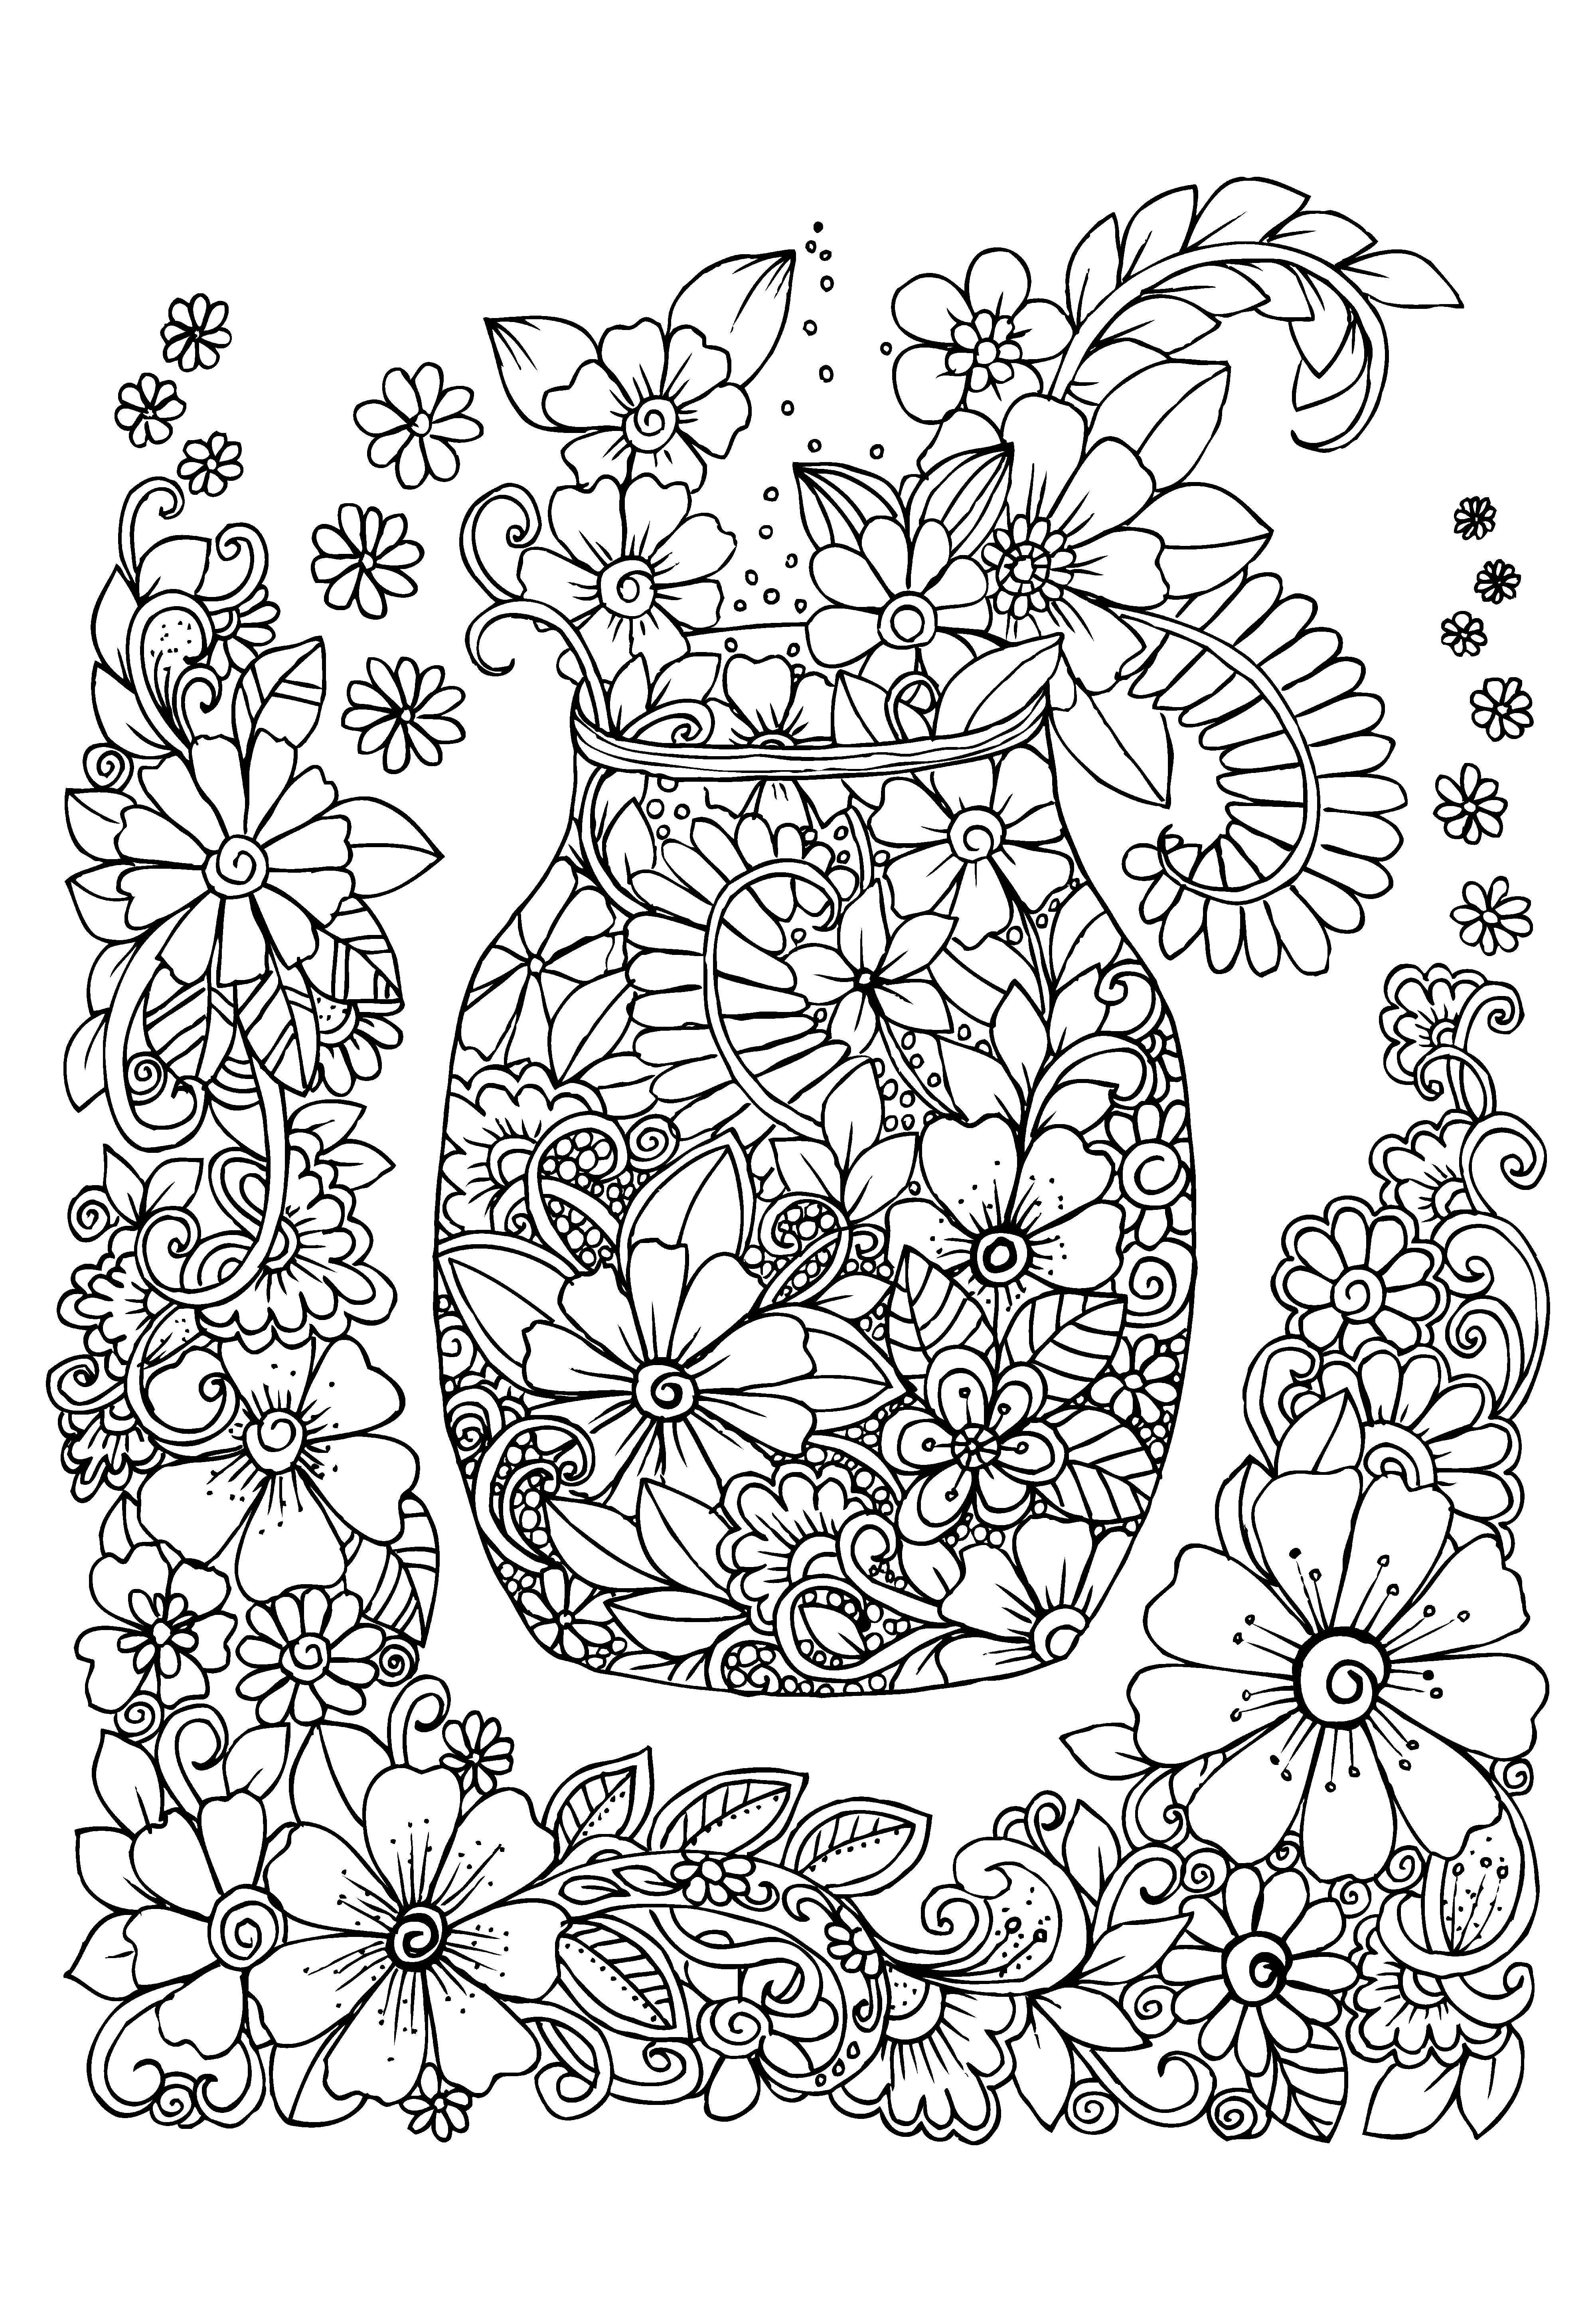 How adult colouring therapy could improve your mental health ...